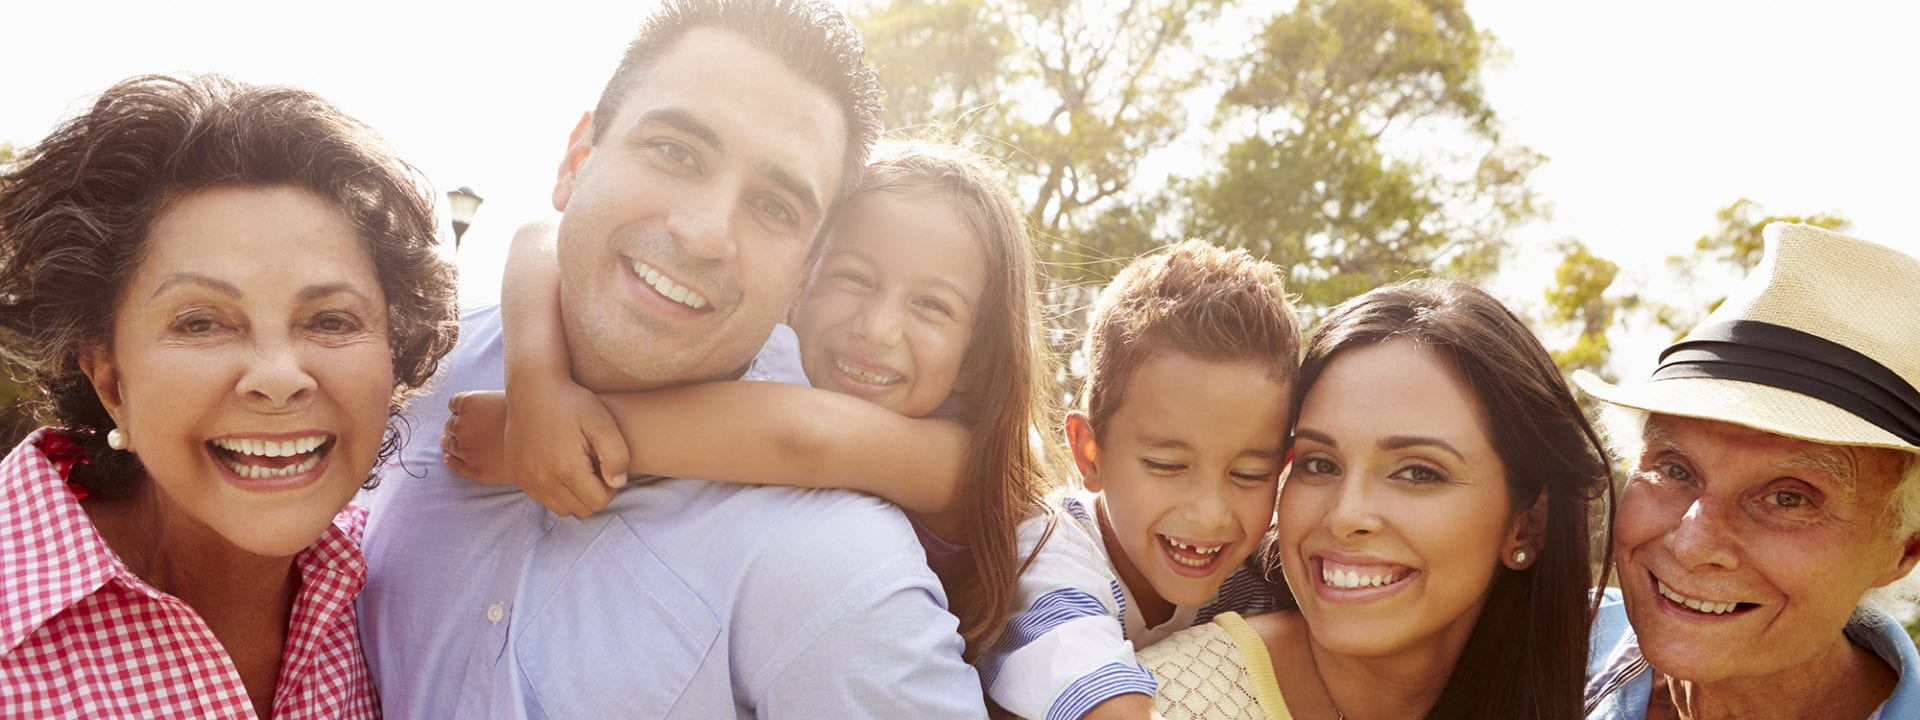 Smiling Family | The Gateway Family YMCA